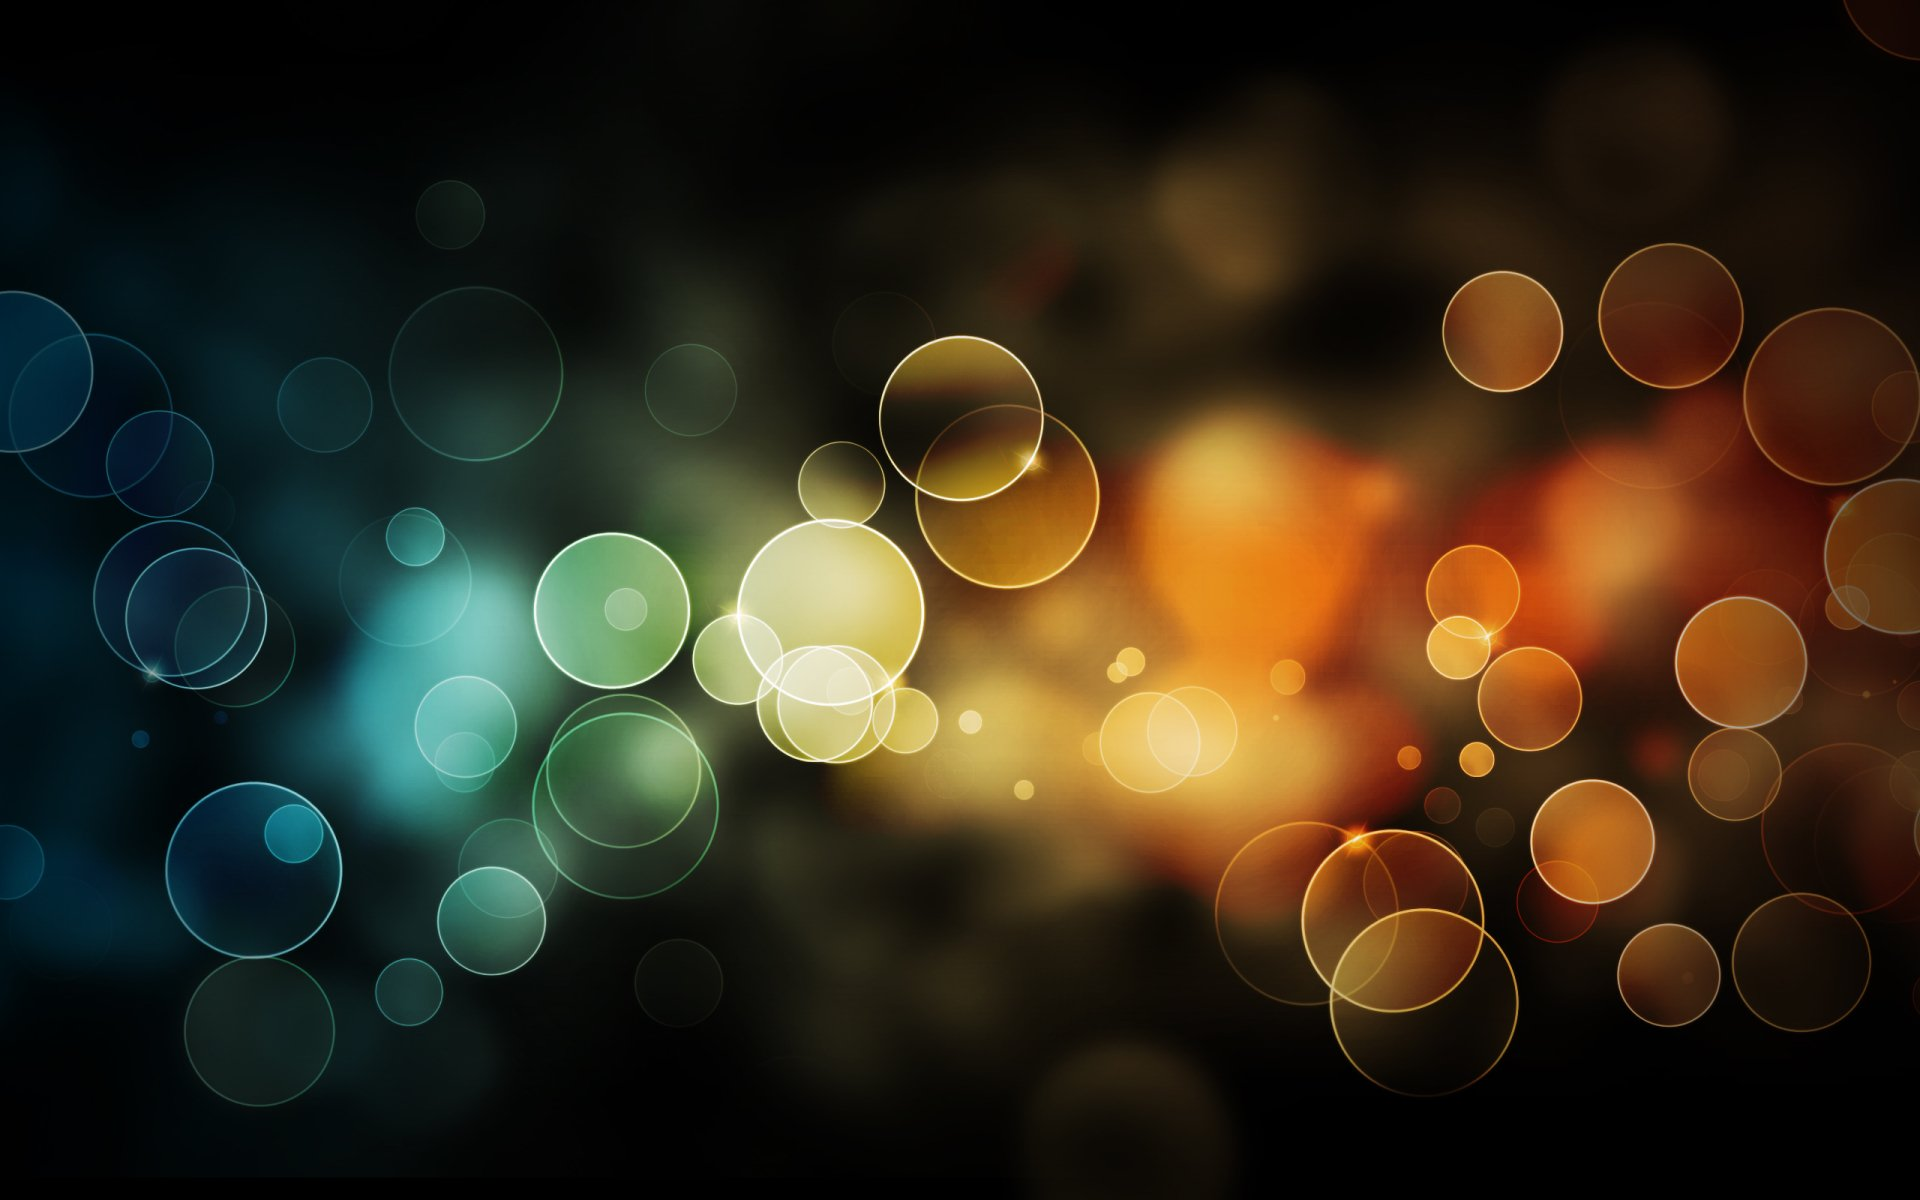 Artistic - Bokeh  Circle Artistic Blur Colors Wallpaper